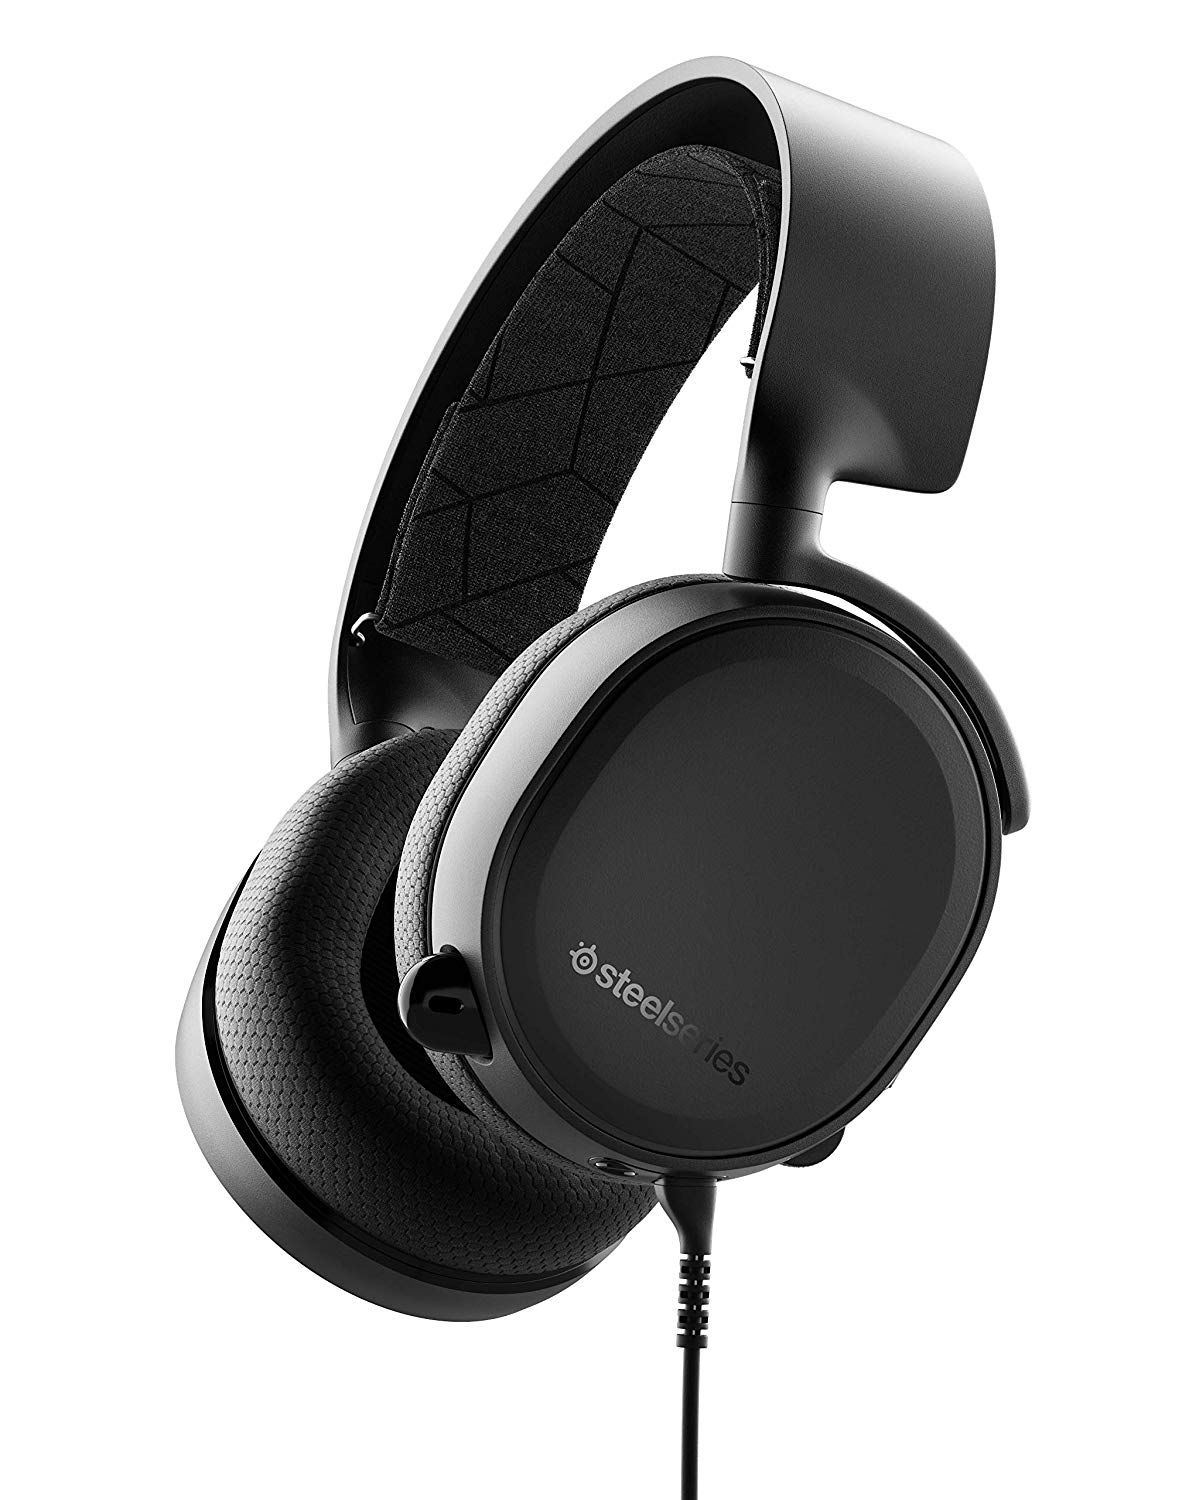 Image of Steelseries Arctis 3